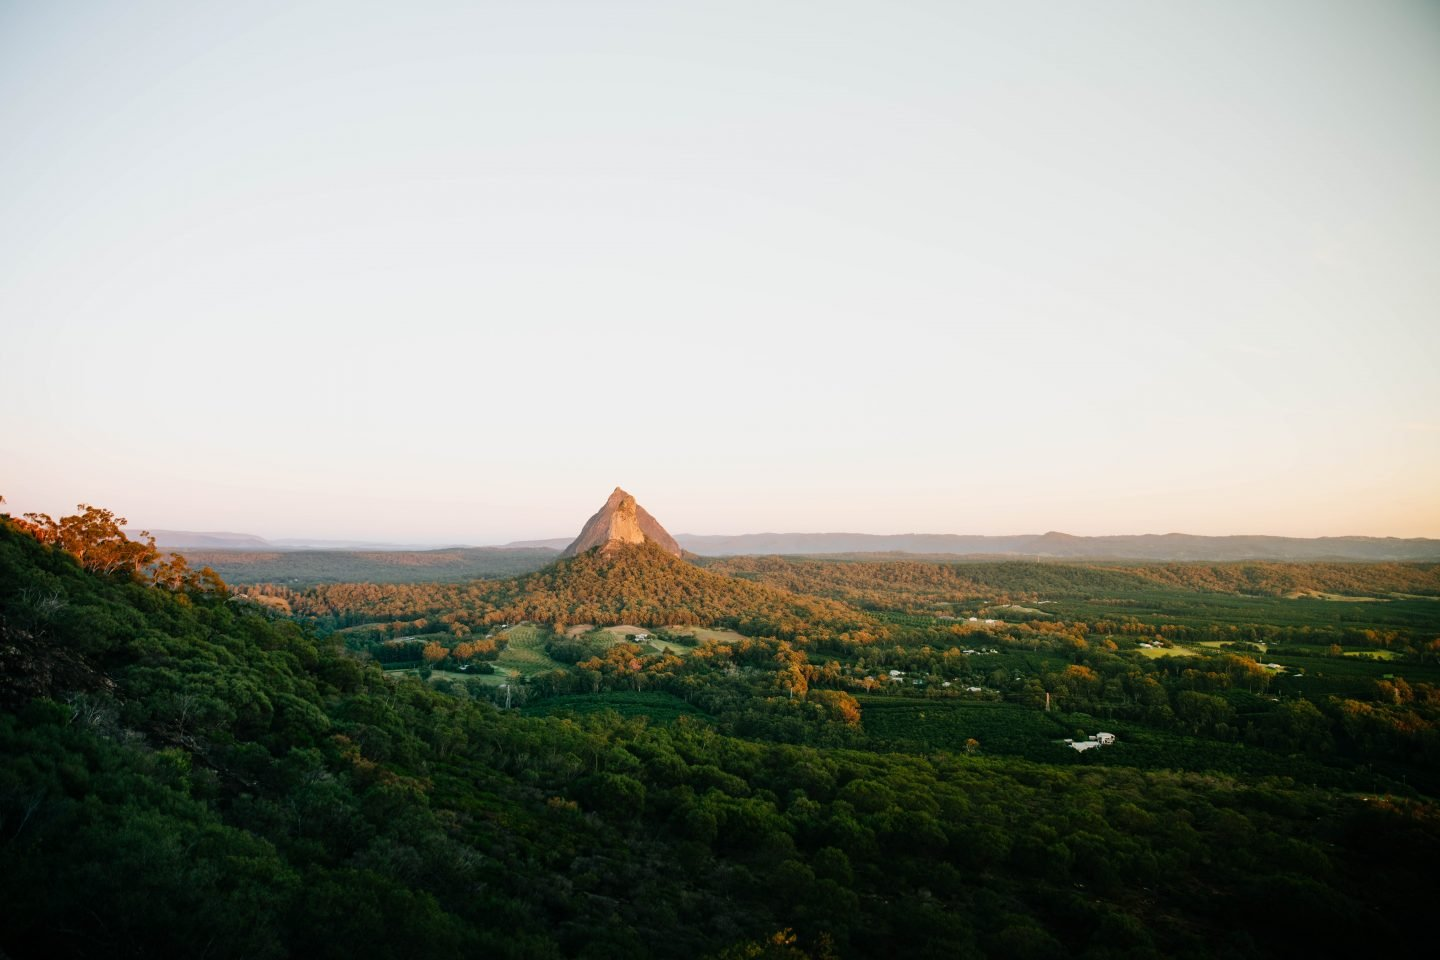 Brisbane to Cairns road trip itinerary